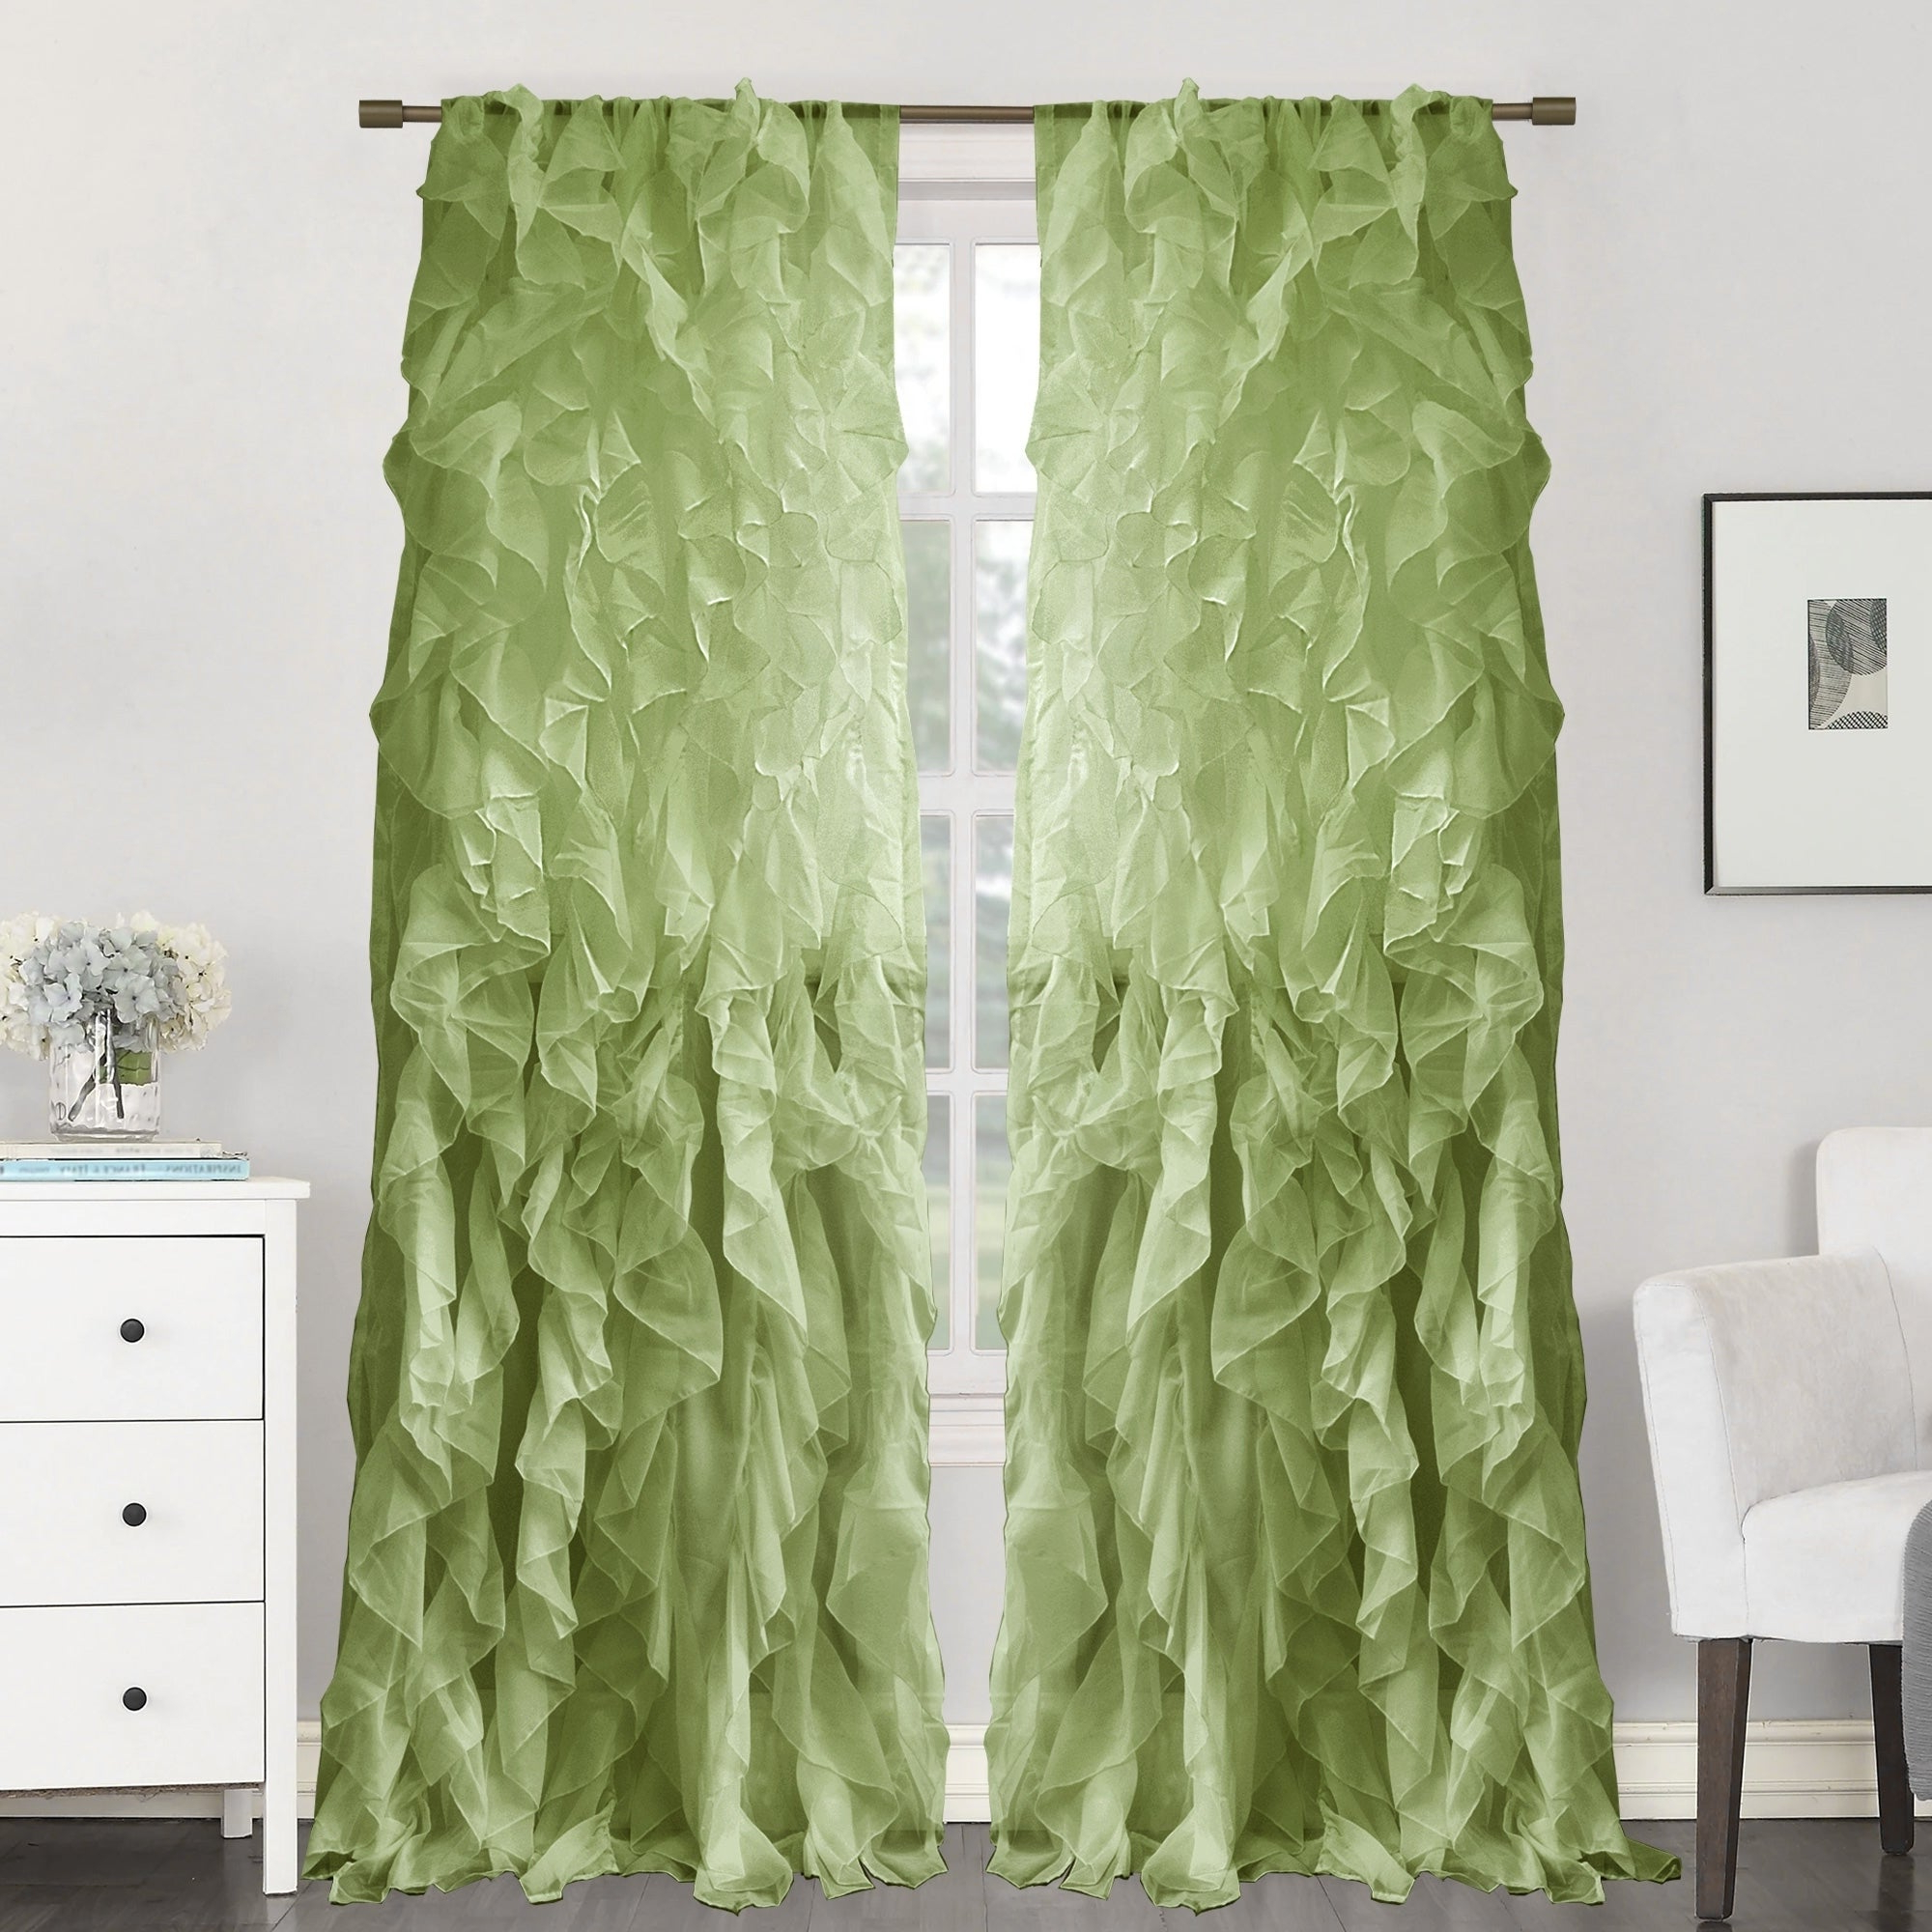 "Sweet Home Collection Sheer Voile Waterfall Ruffled Tier 96 Inch Single  Curtain Panel – 96"" Long X 50"" Wide With Regard To Well Liked Sheer Voile Waterfall Ruffled Tier Single Curtain Panels (View 19 of 20)"